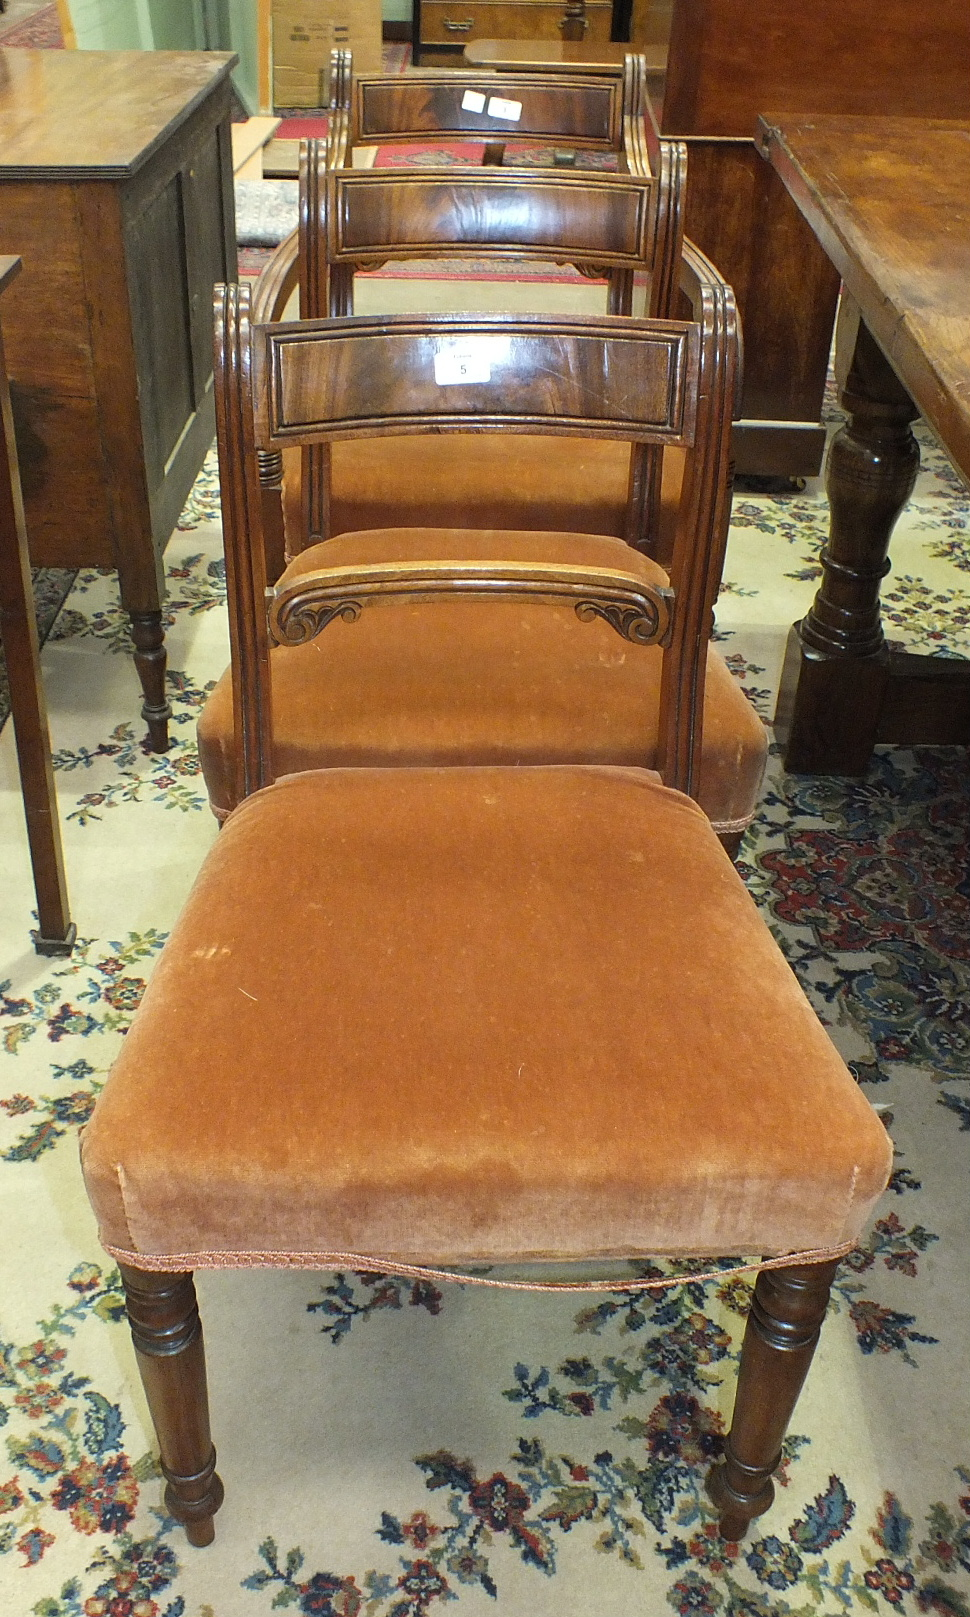 Lot 5 - A set of six late-19th century mahogany Regency-style dining chairs on turned front legs, includes